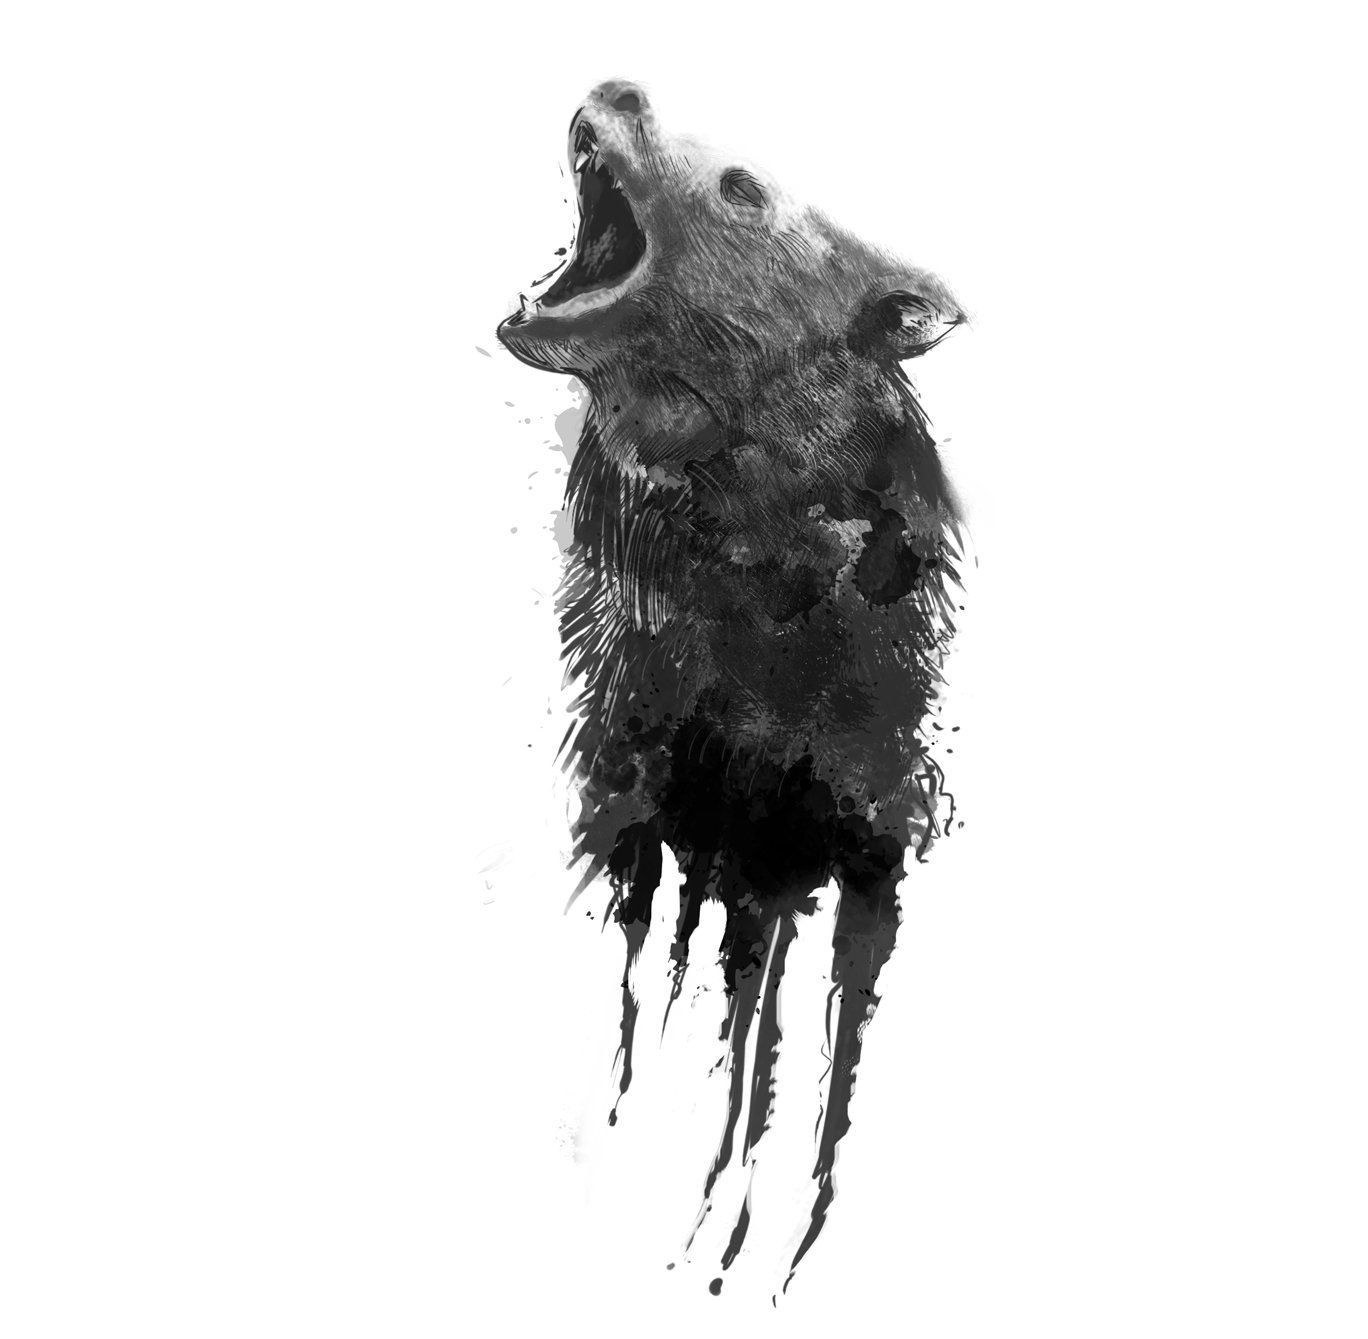 Clipart of grizzly bear with tattoos holding chainsaw picture royalty free Unstoppable | Products | Wolf tattoos, Temporary tattoo designs, Tattoos picture royalty free